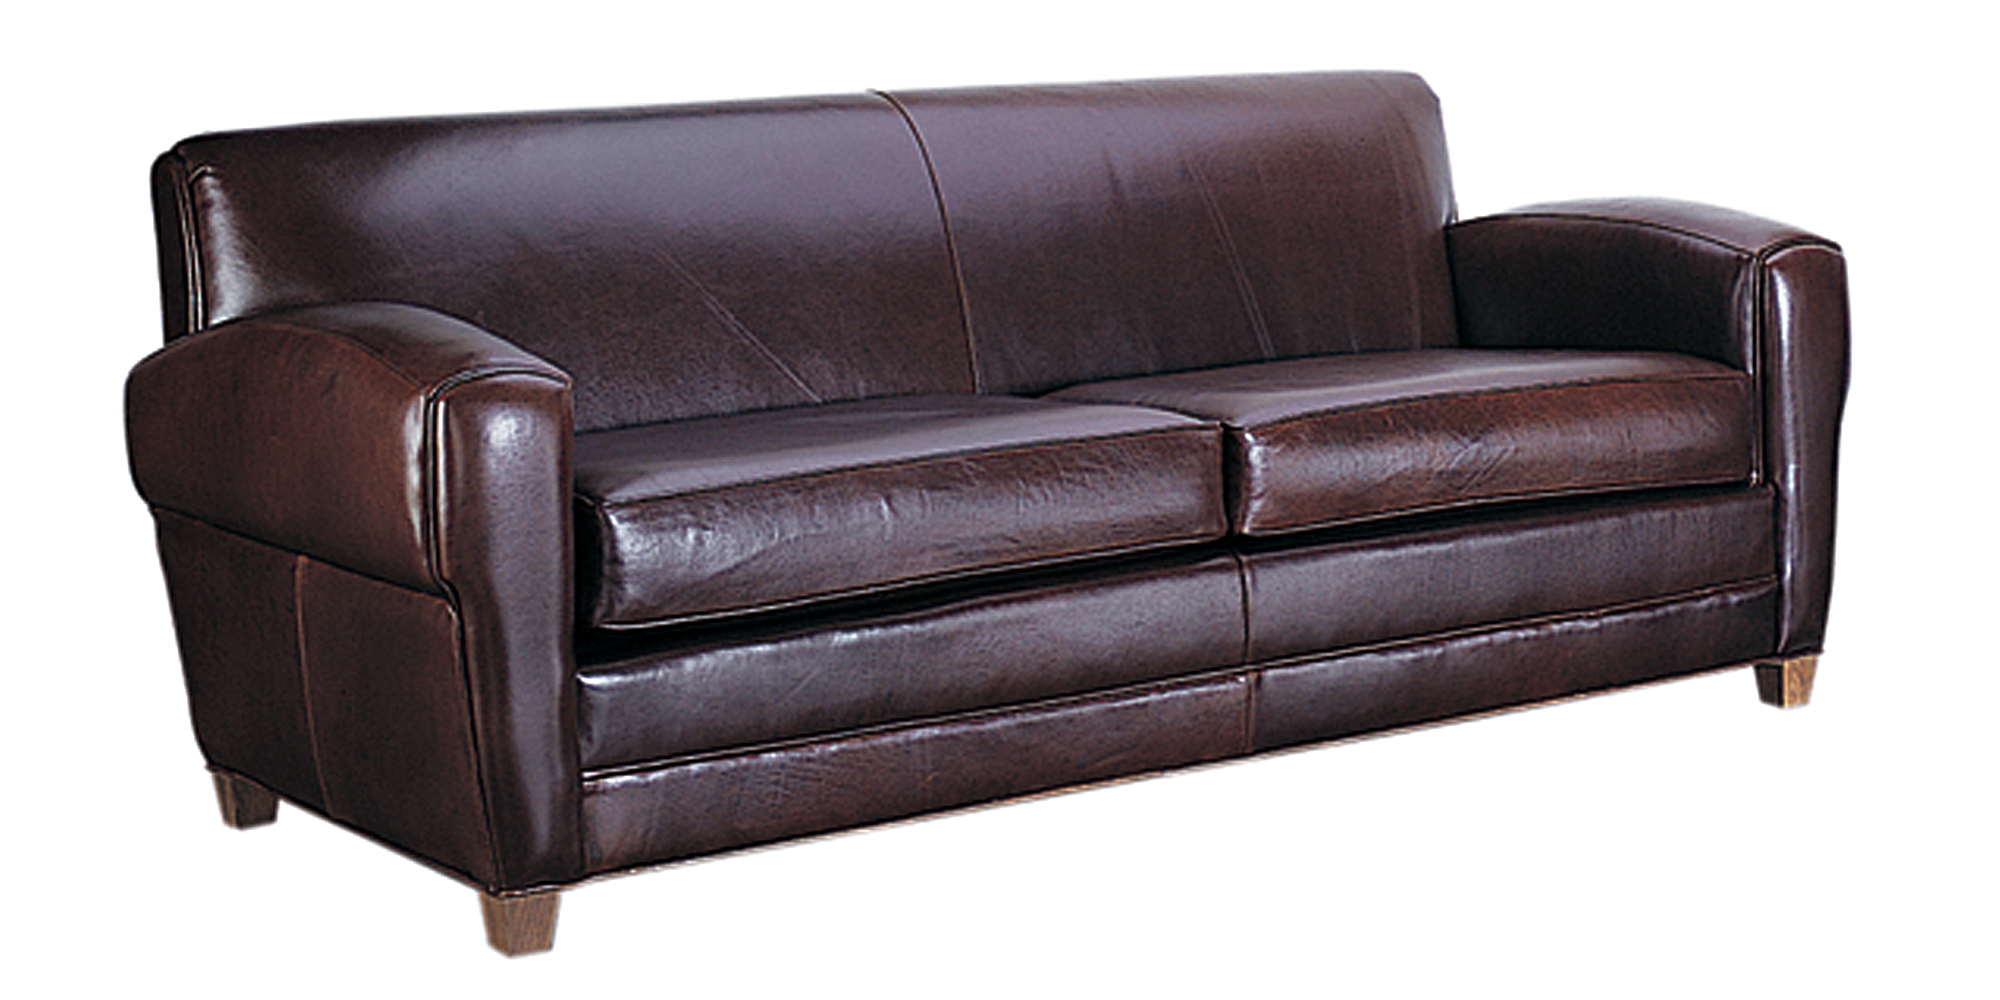 Paris Art Deco Low Profile Italian Leather Sofa With Two  : madison designer style parisian art deco leather sofa collection 1 from www.clubfurniture.com size 2000 x 1000 jpeg 711kB